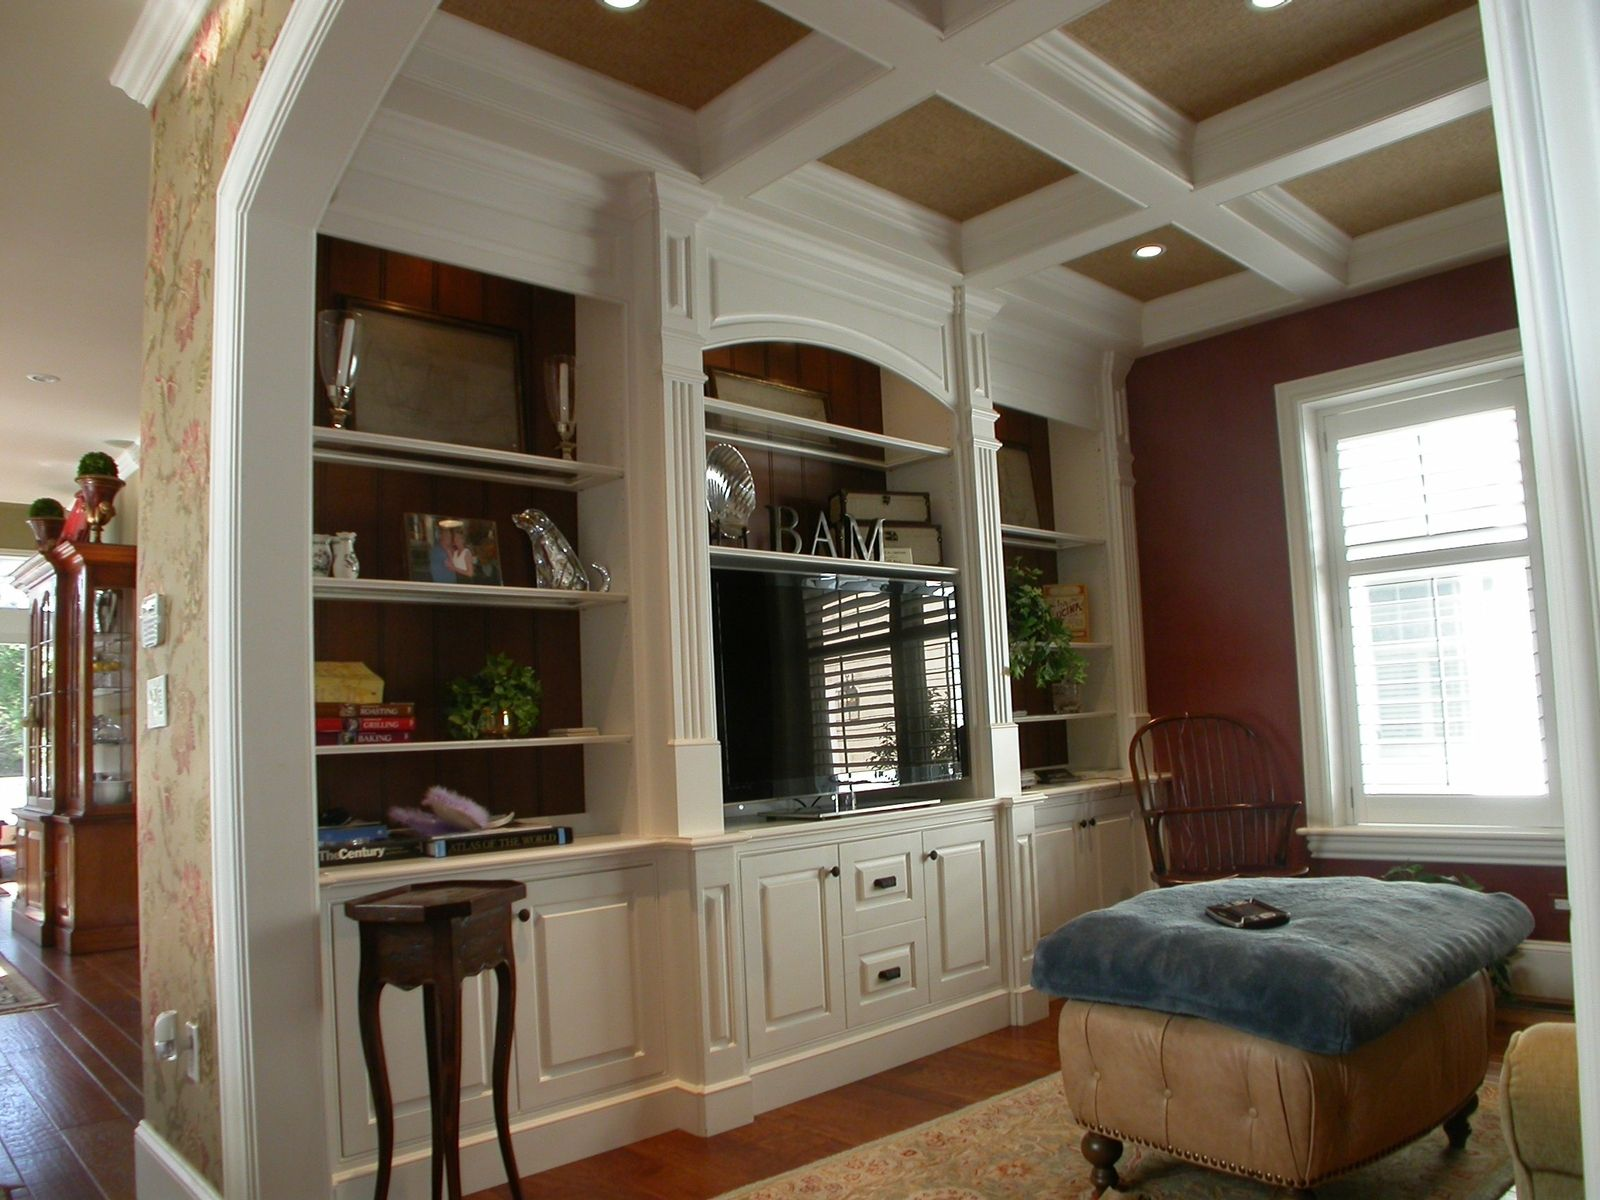 Just the white cabinetry, not the colours and decor etc. Full wall ...